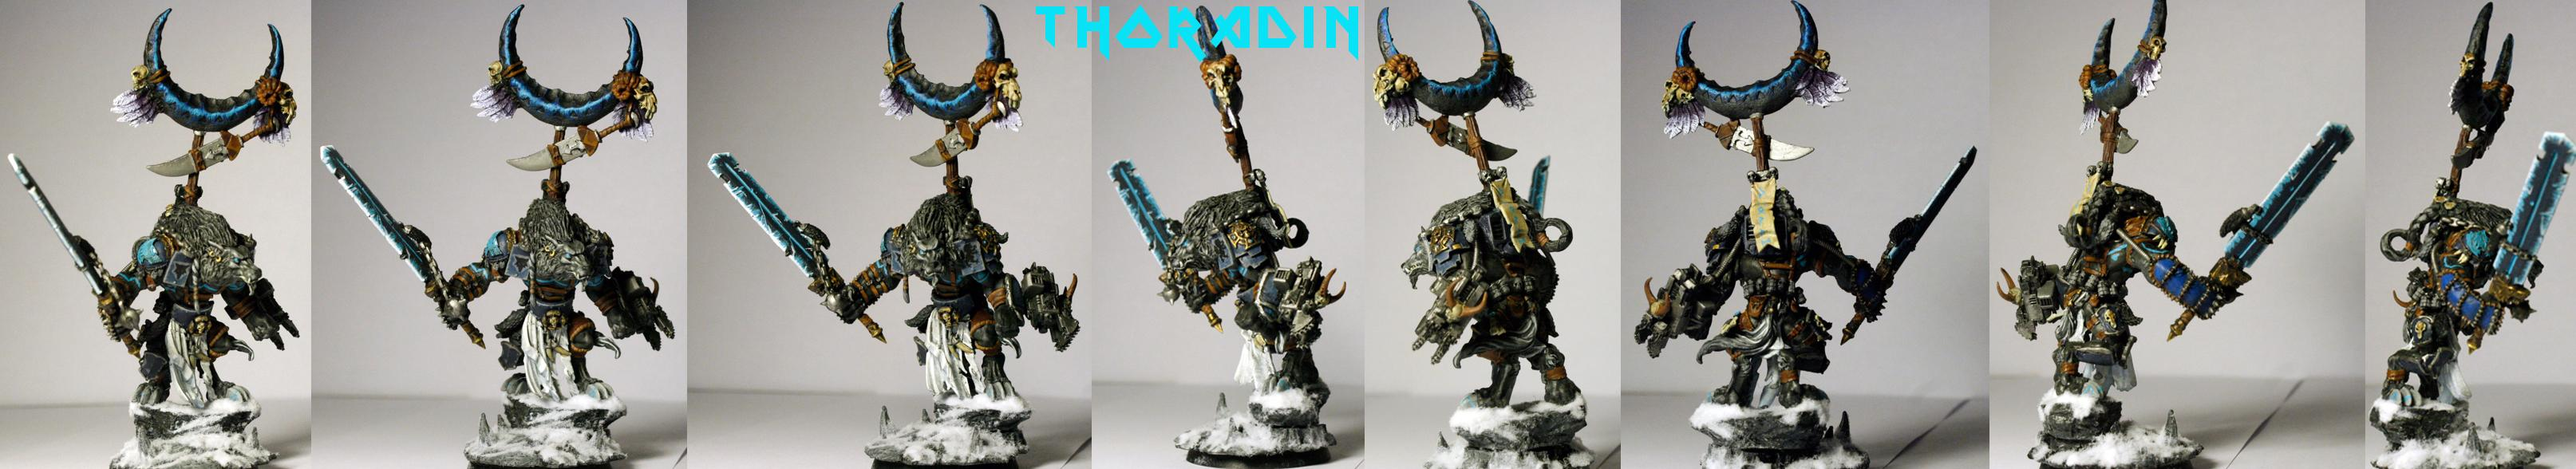 Frostblade, Frostweapon, Sakrileg, Space Wolves, Thoradin, Whitefang, Wolf Lord, Wolflord, Wulfen, Wulfen Lord, Wulfenlord